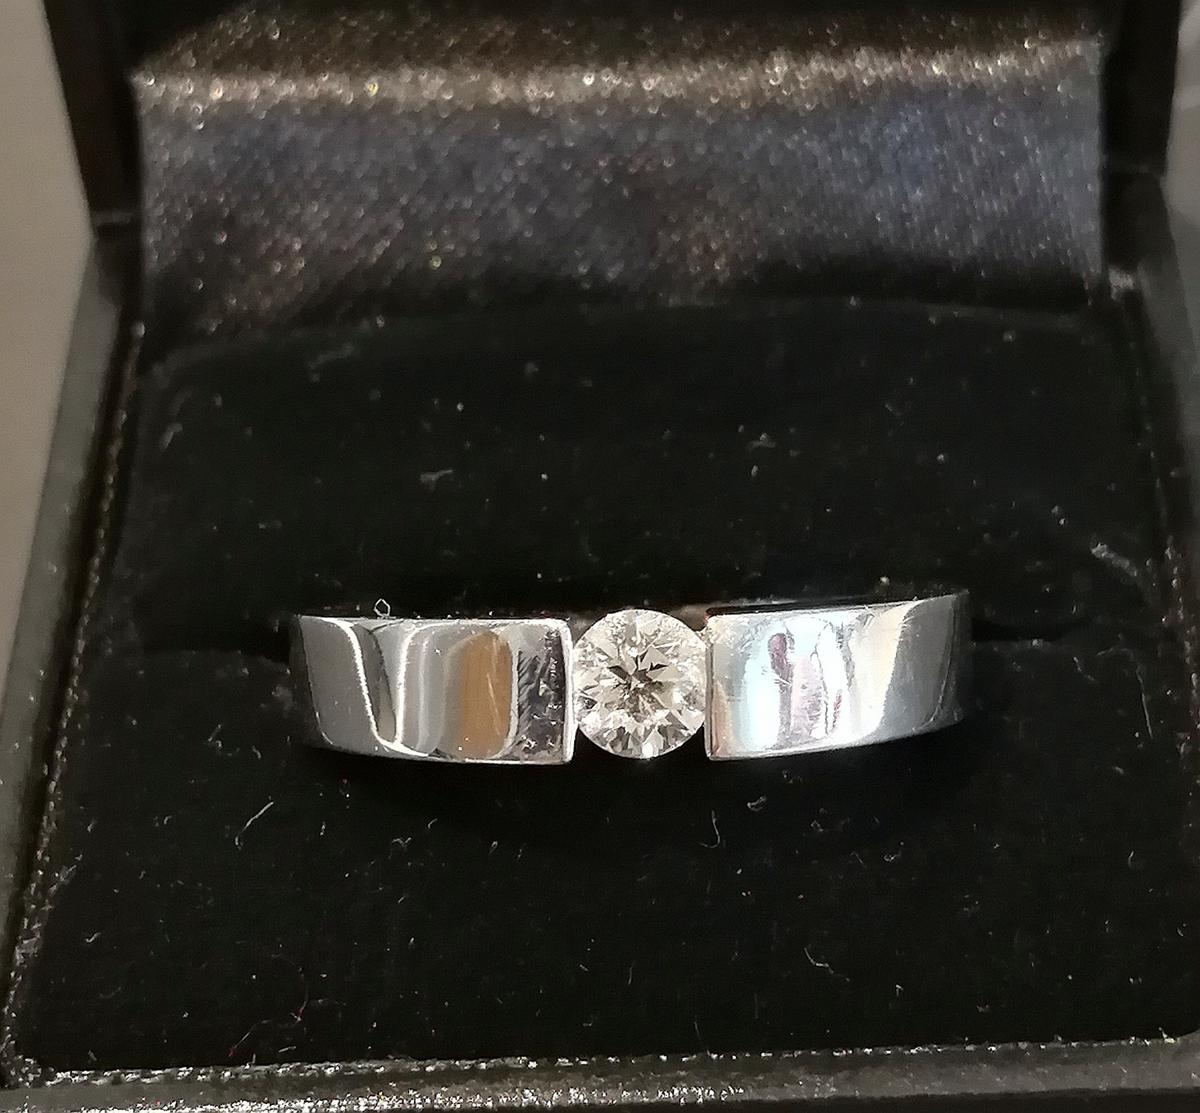 An absolute stunning 18ct white gold Gassan 121 diamond solitare ring. The ring comes with its full certificate of authenticity. The size of the ring is roughly a T. Collection only and no time wasters please.